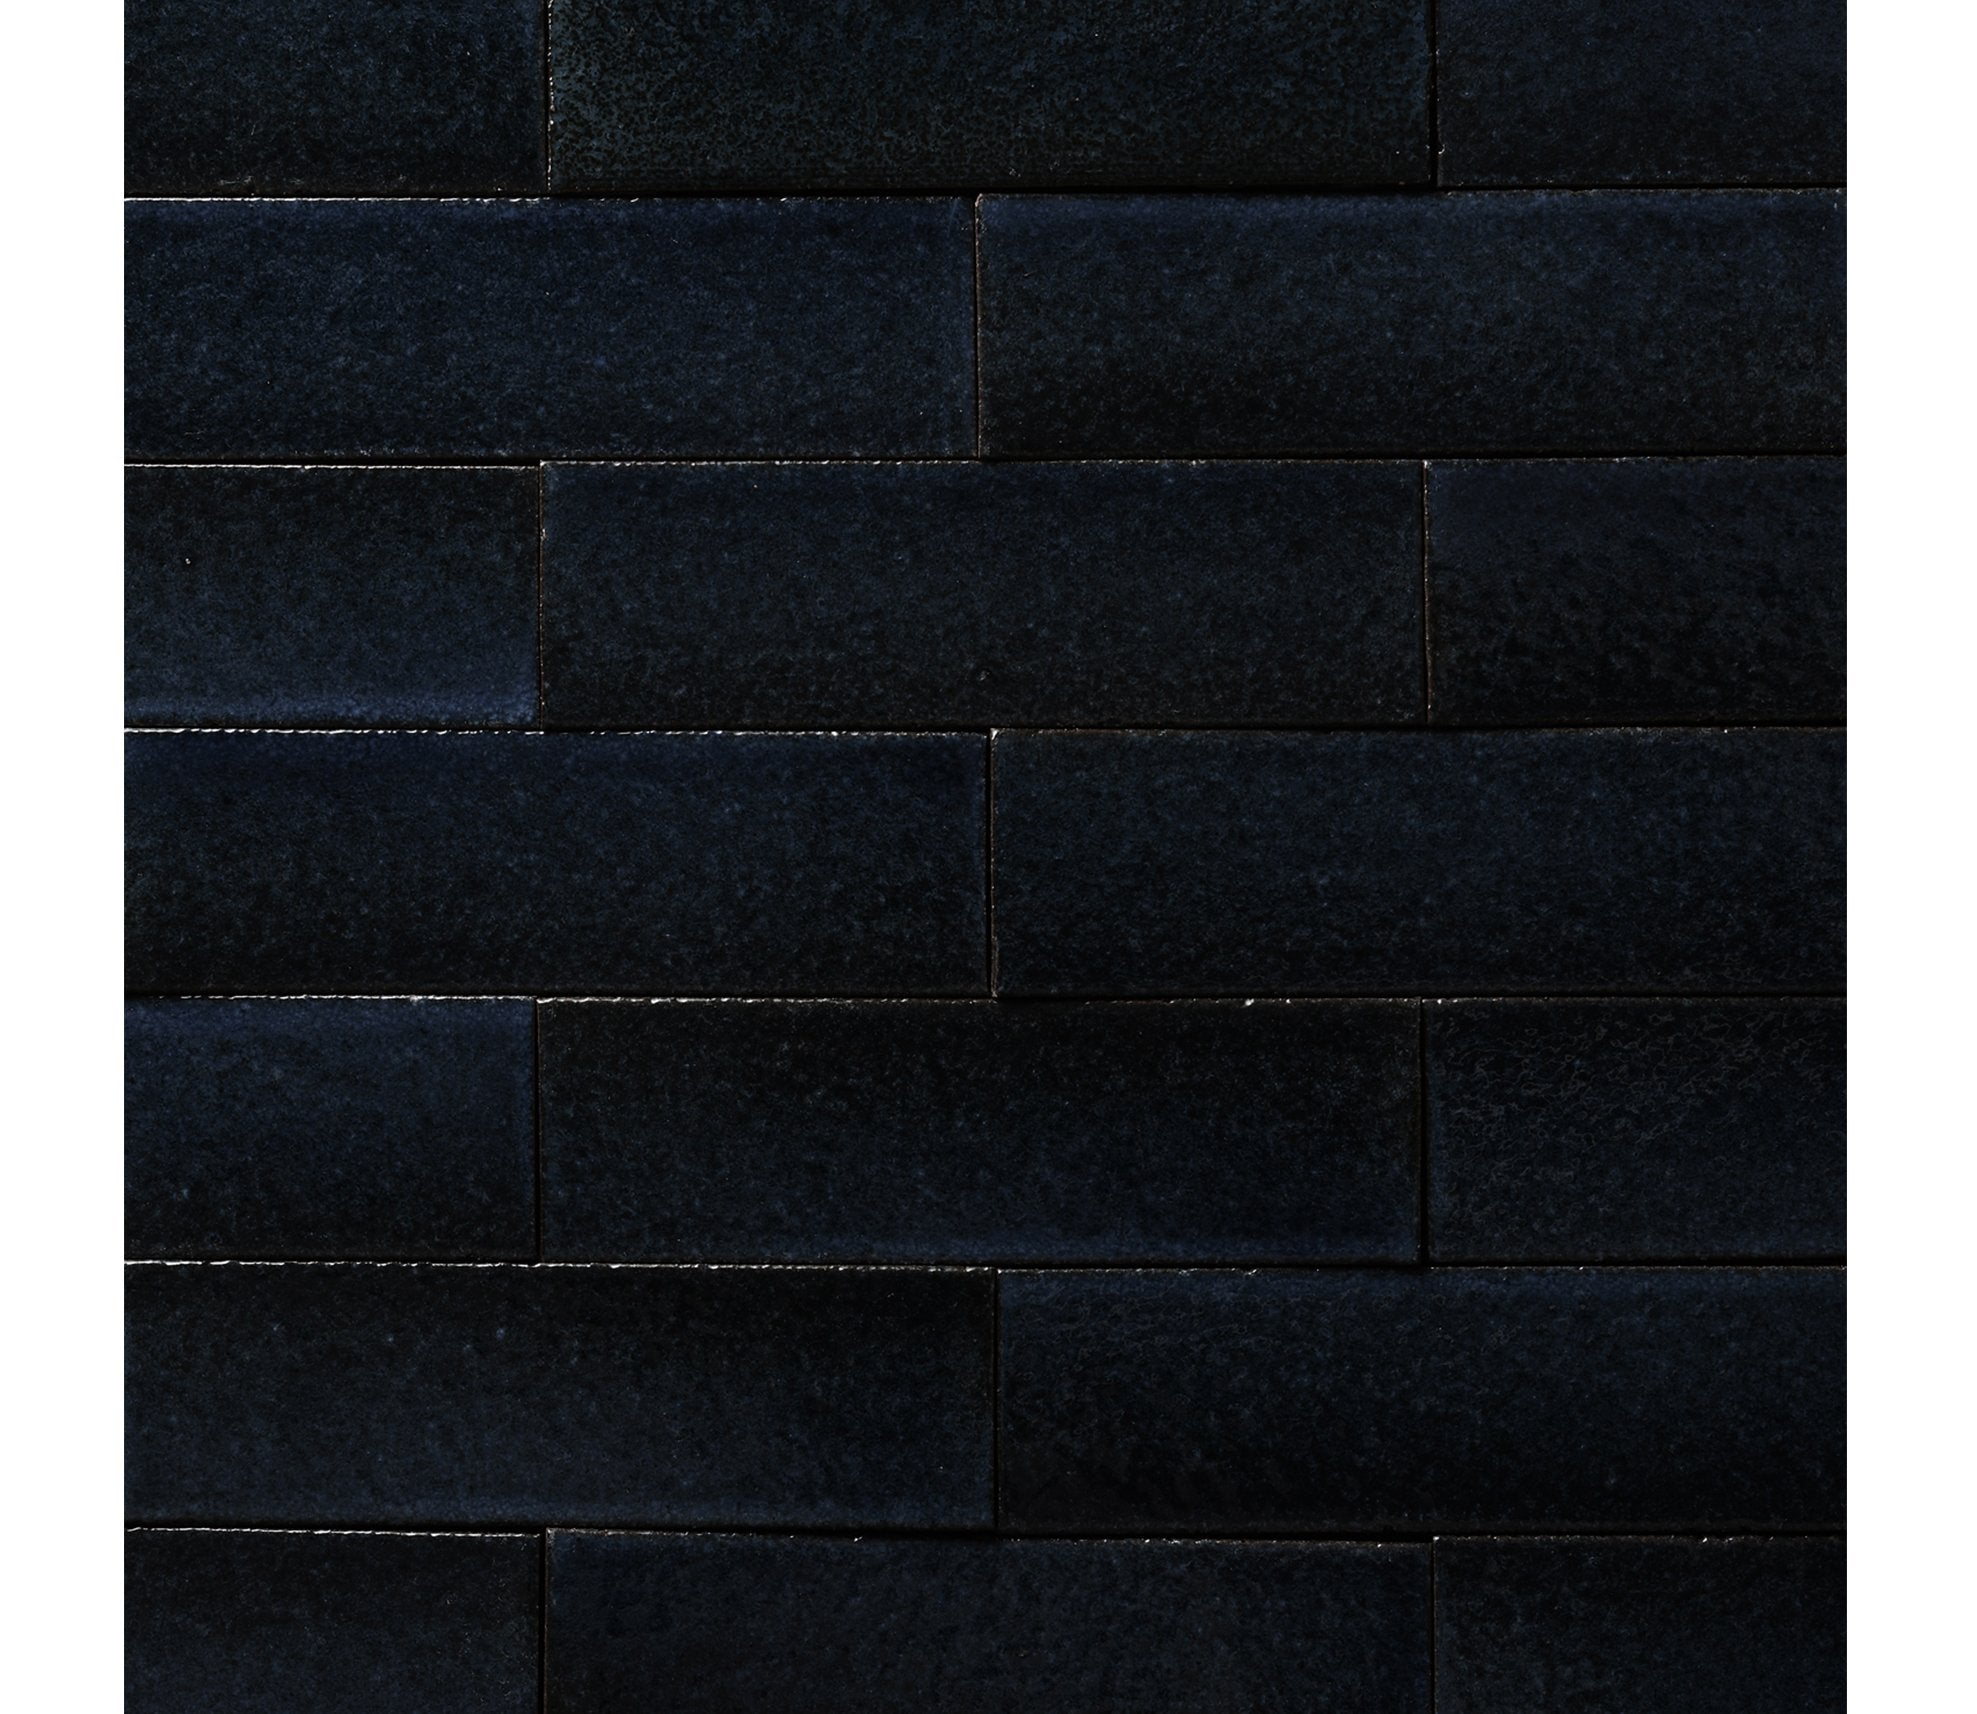 Terra Firma Glazed Bricks Product Image 51